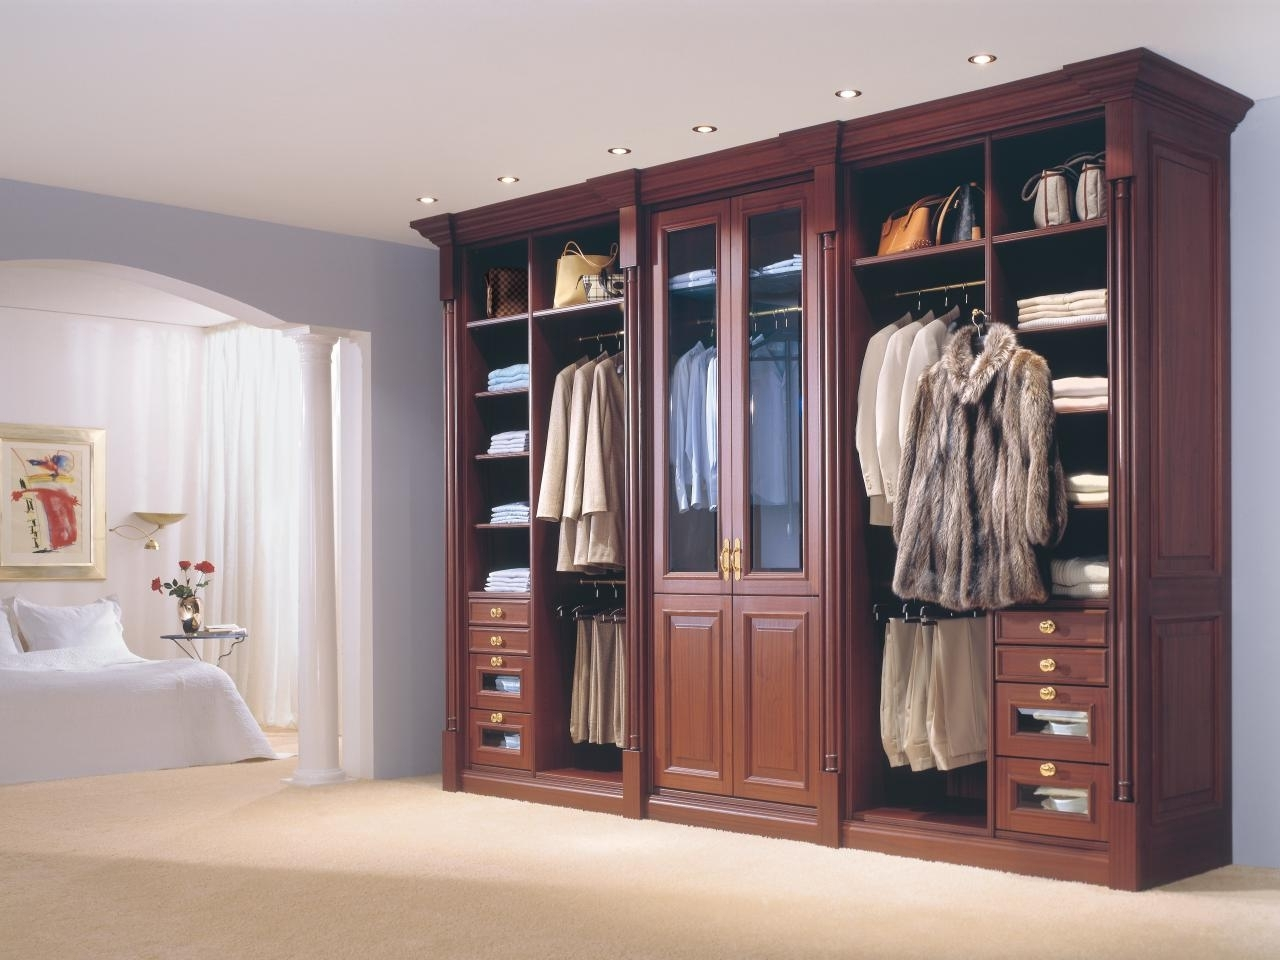 Hgtv Intended For Newest Where To  Wardrobes (View 3 of 15)